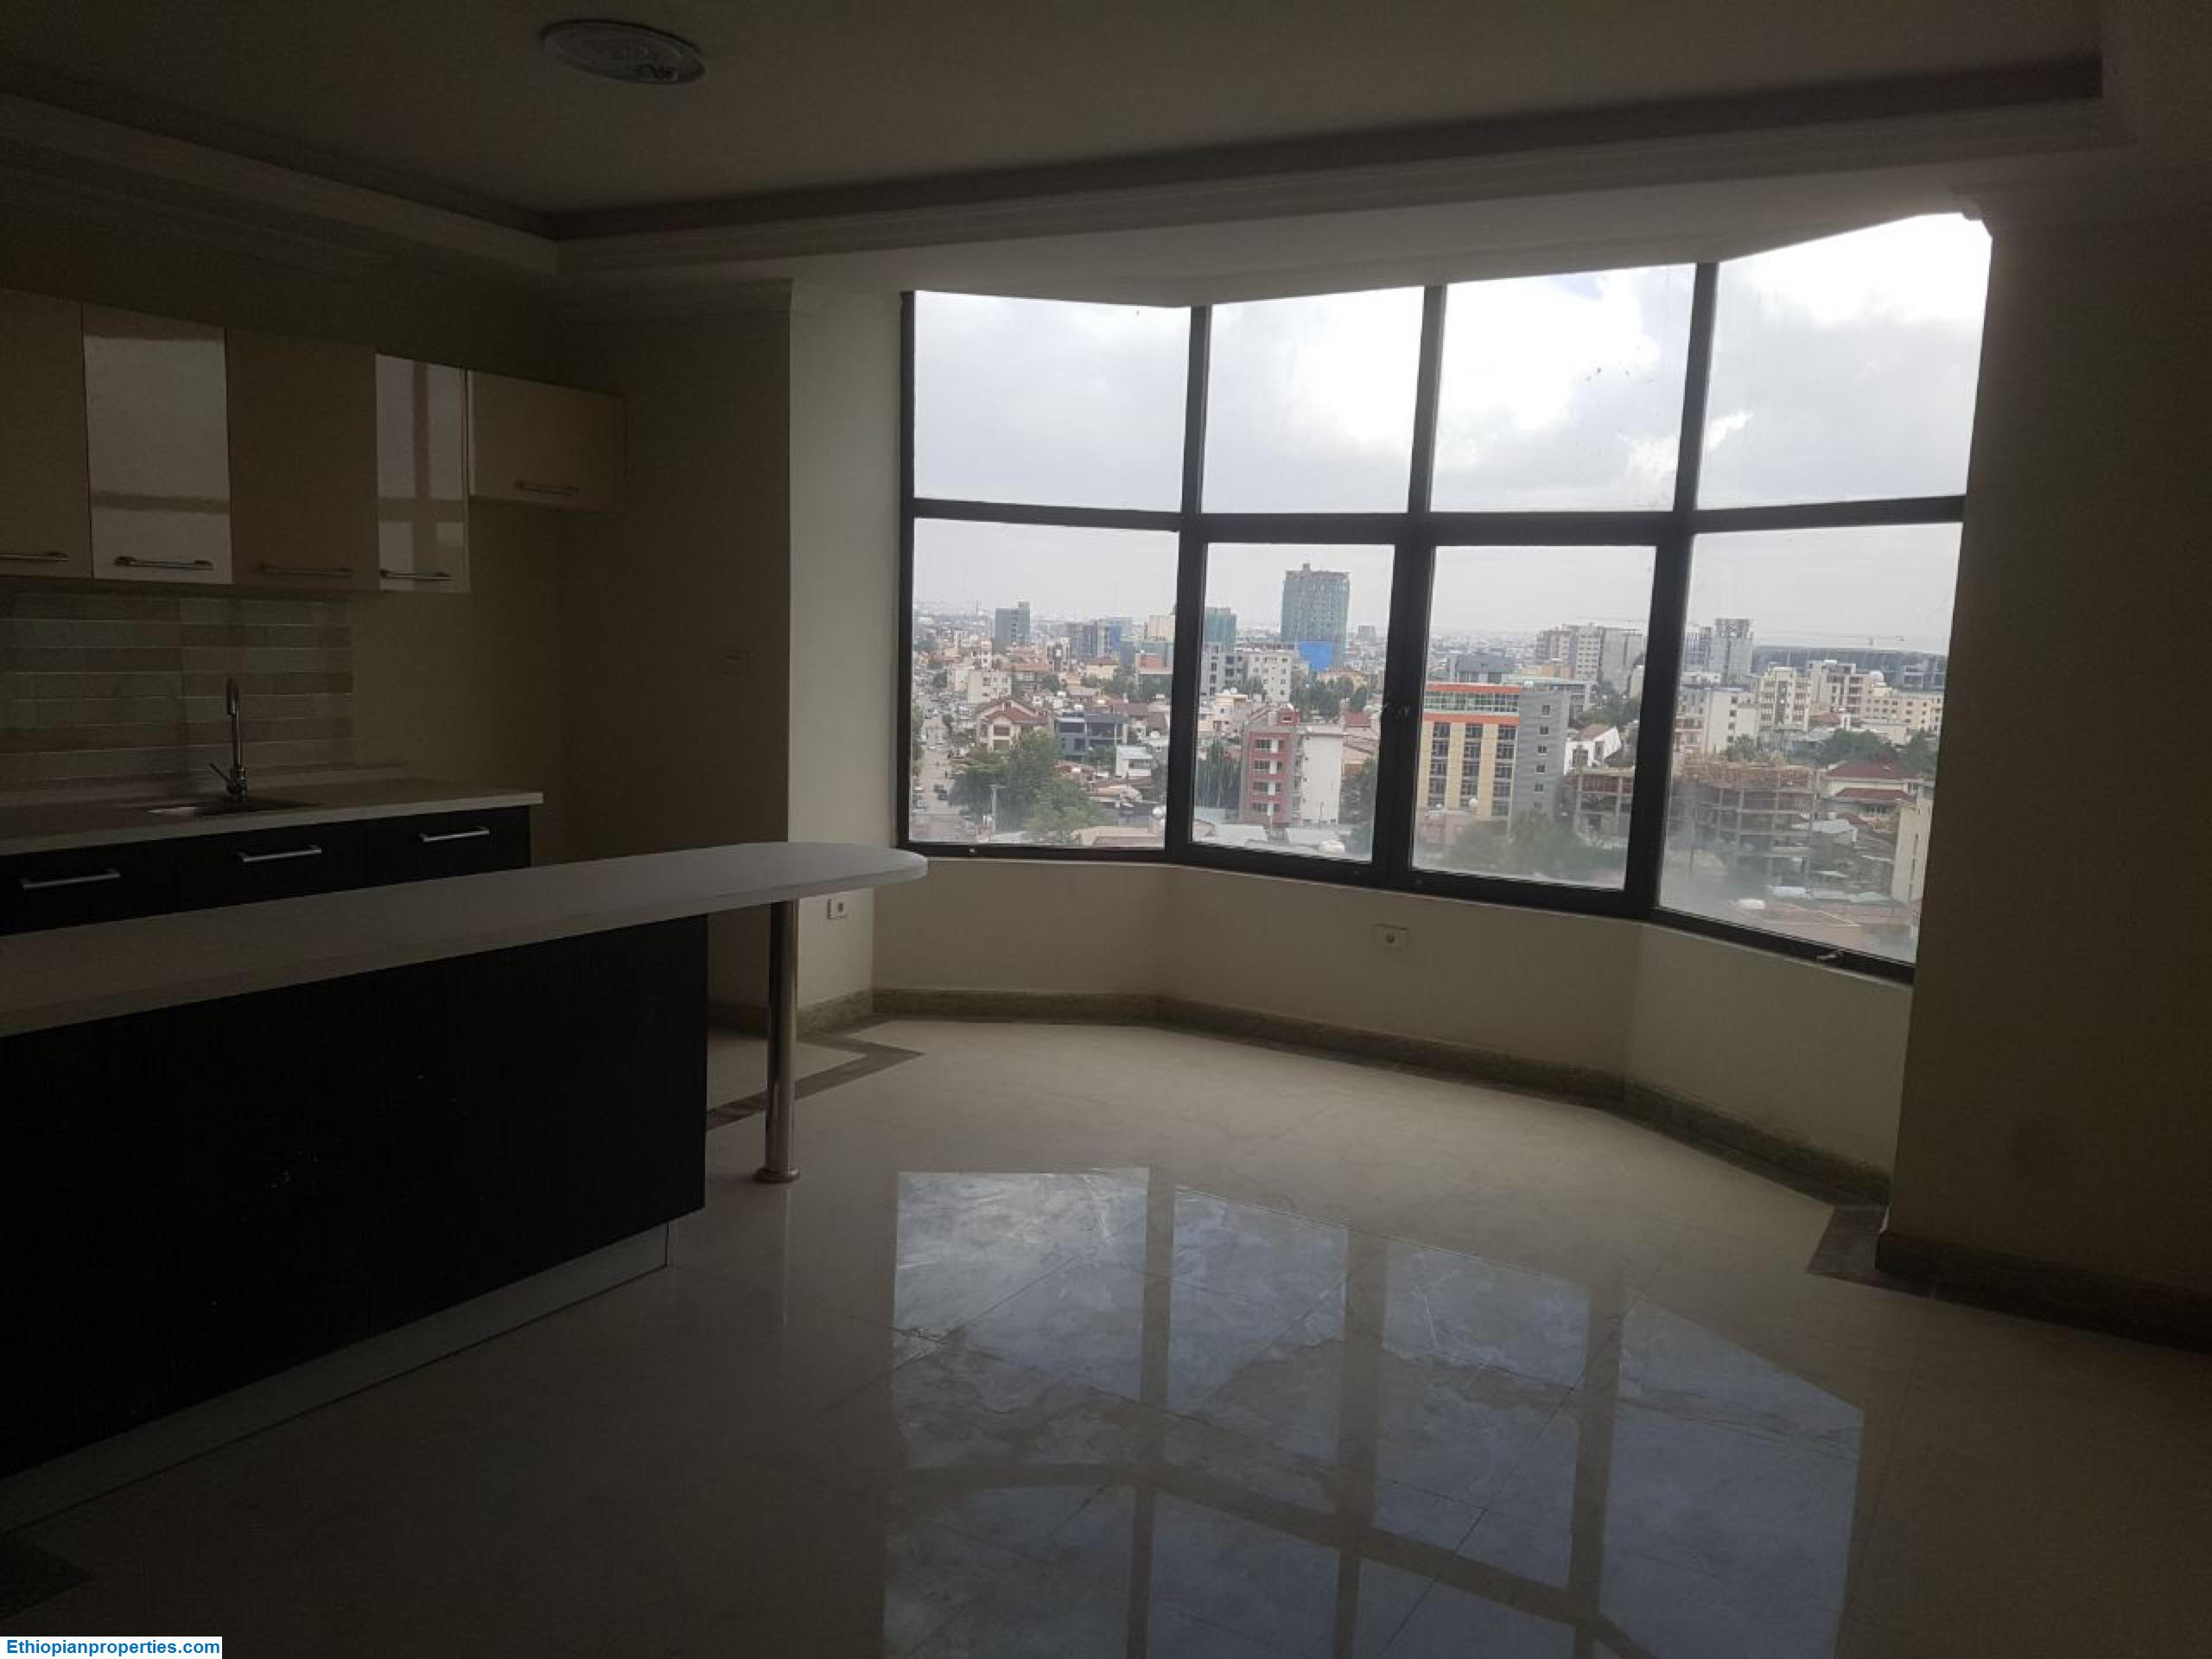 One Bedroom Apartment for Sale - Ethiopianproperties.com